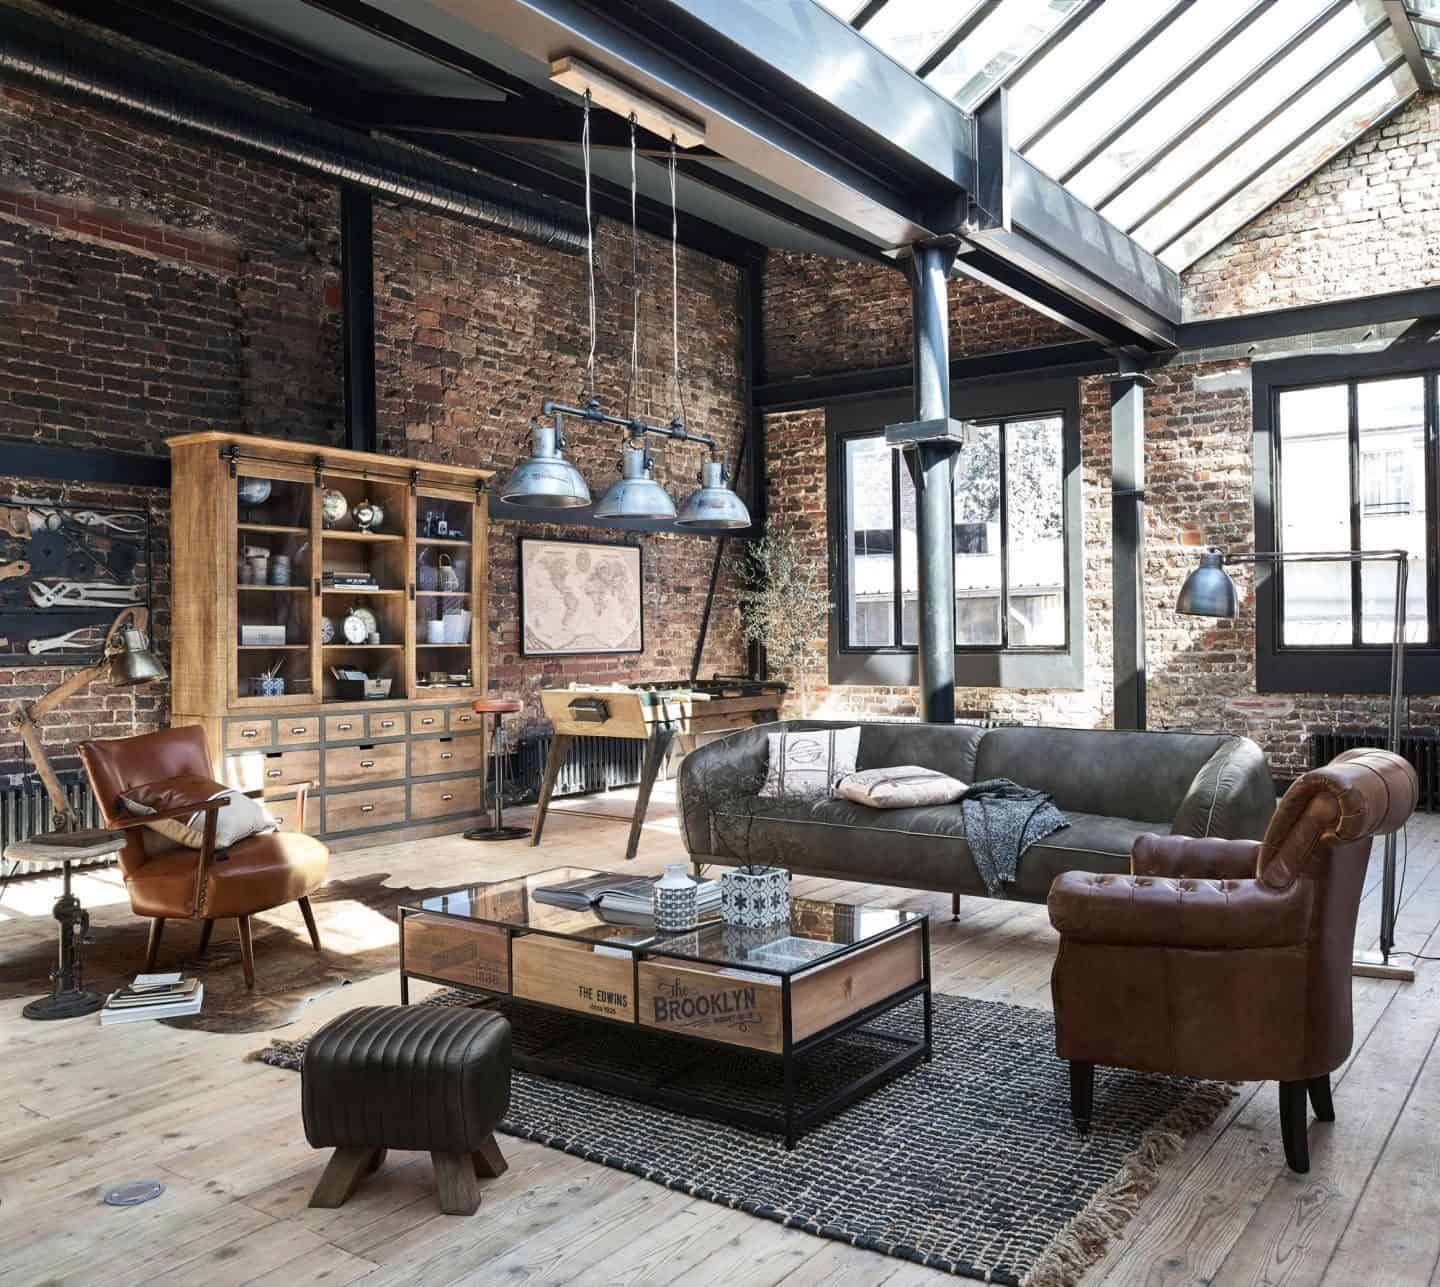 An industrial style living room featuring exposed brick walls, steel beams and industrial style lighting.